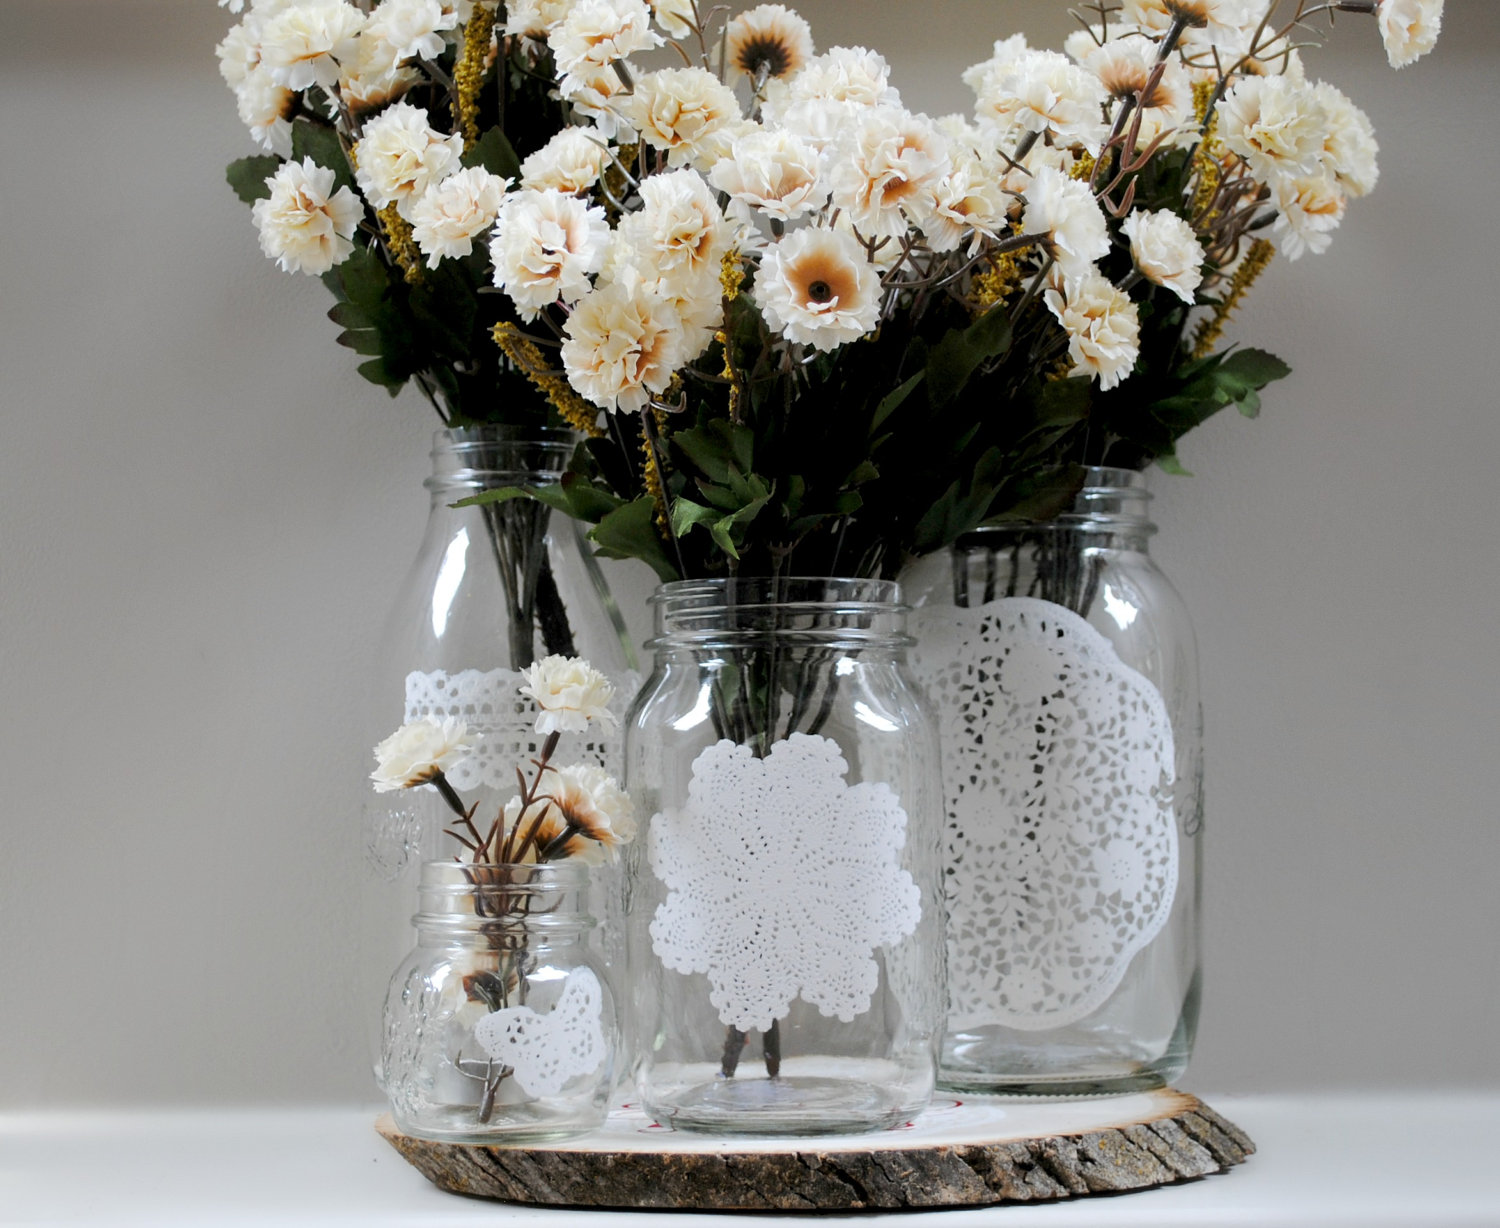 Things-brides-love-mason-jar-wedding-reception-decor-centerpieces-doily-adorned.original